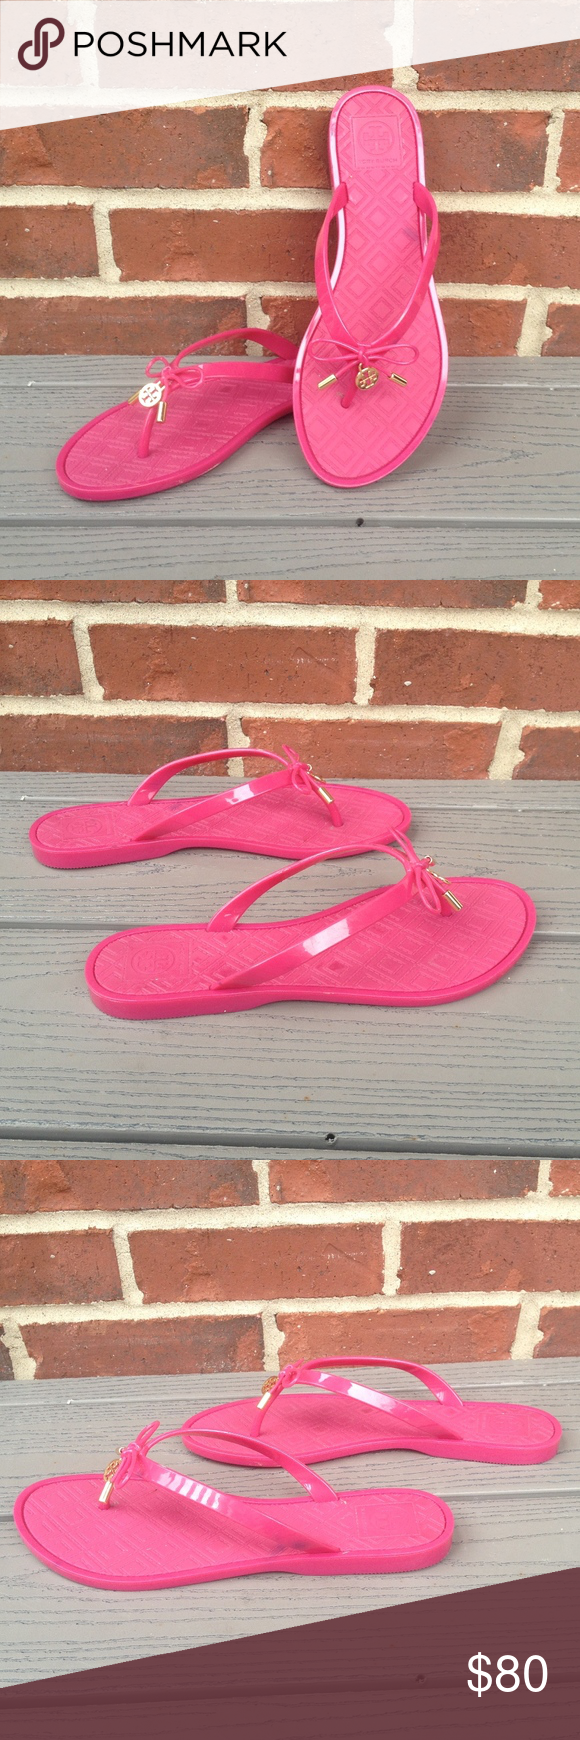 1dd21003a98e Tory Burch Jelly Bow Logo Charm Thong Sandal Colorful Tory Burch rubber jelly  thong sandal in